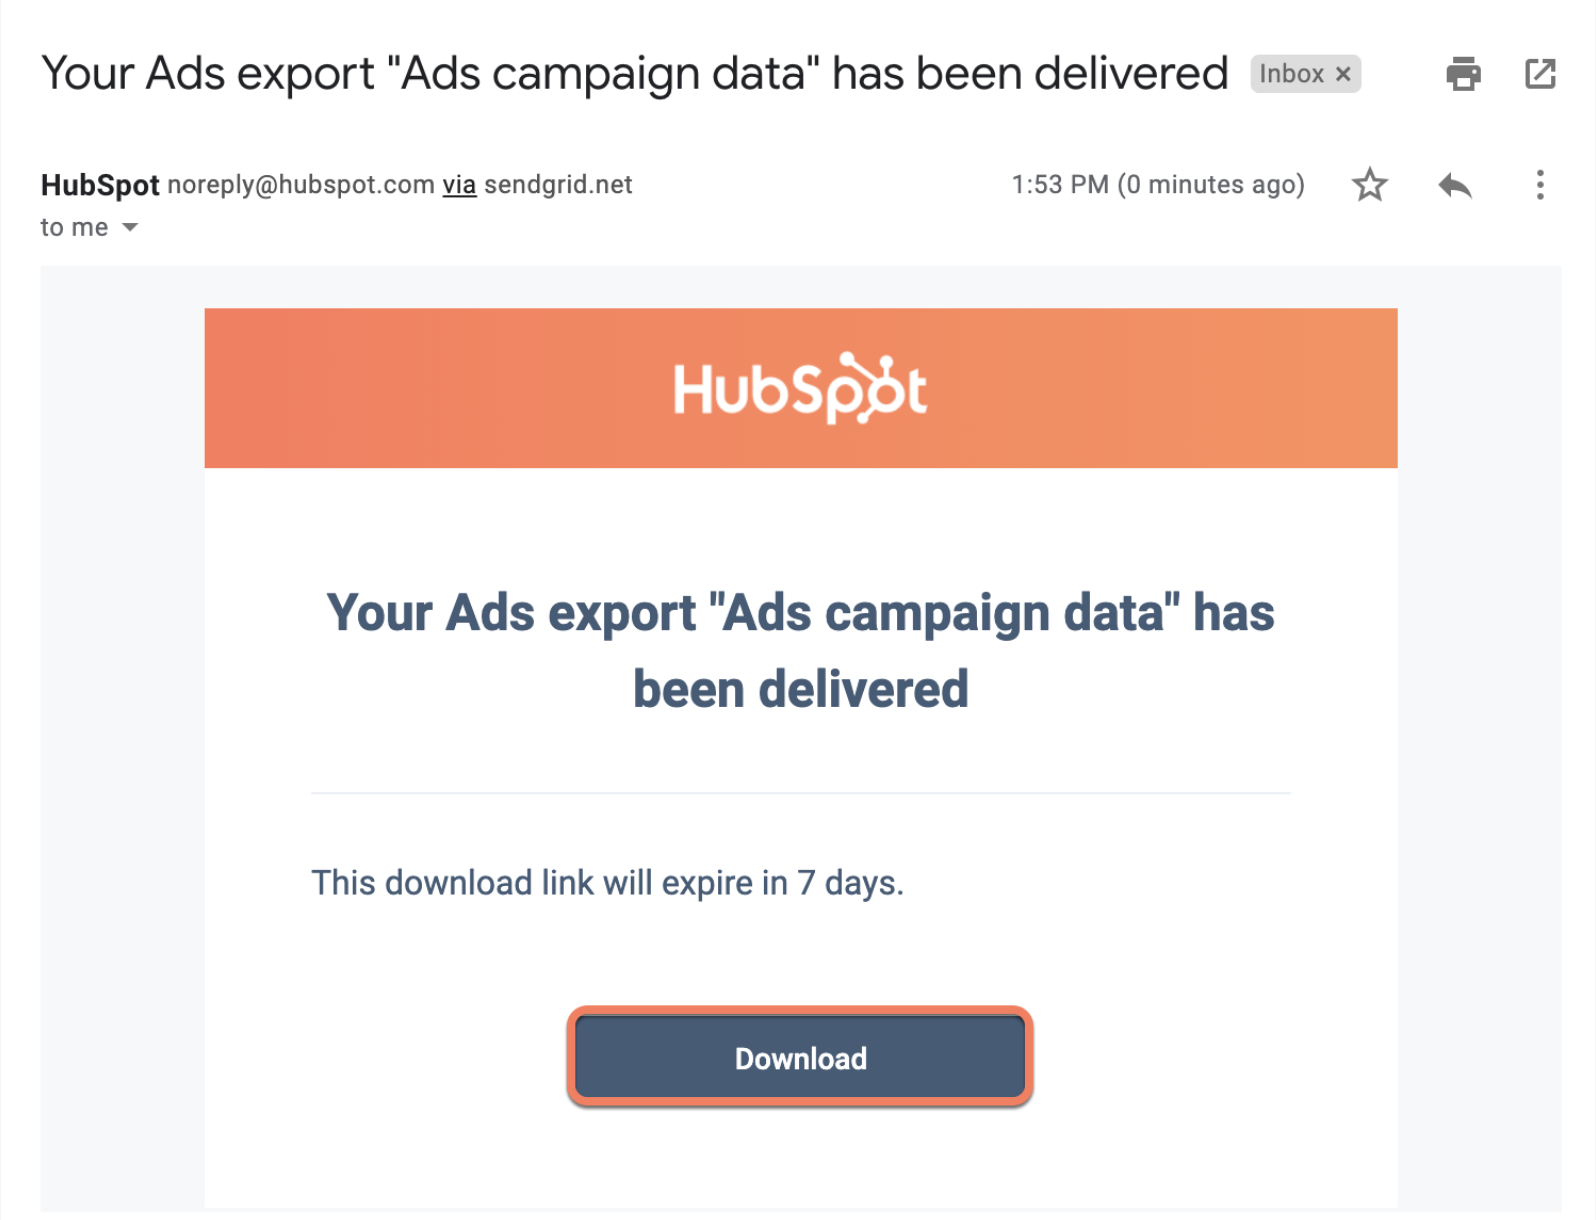 Ads export data confirmation email